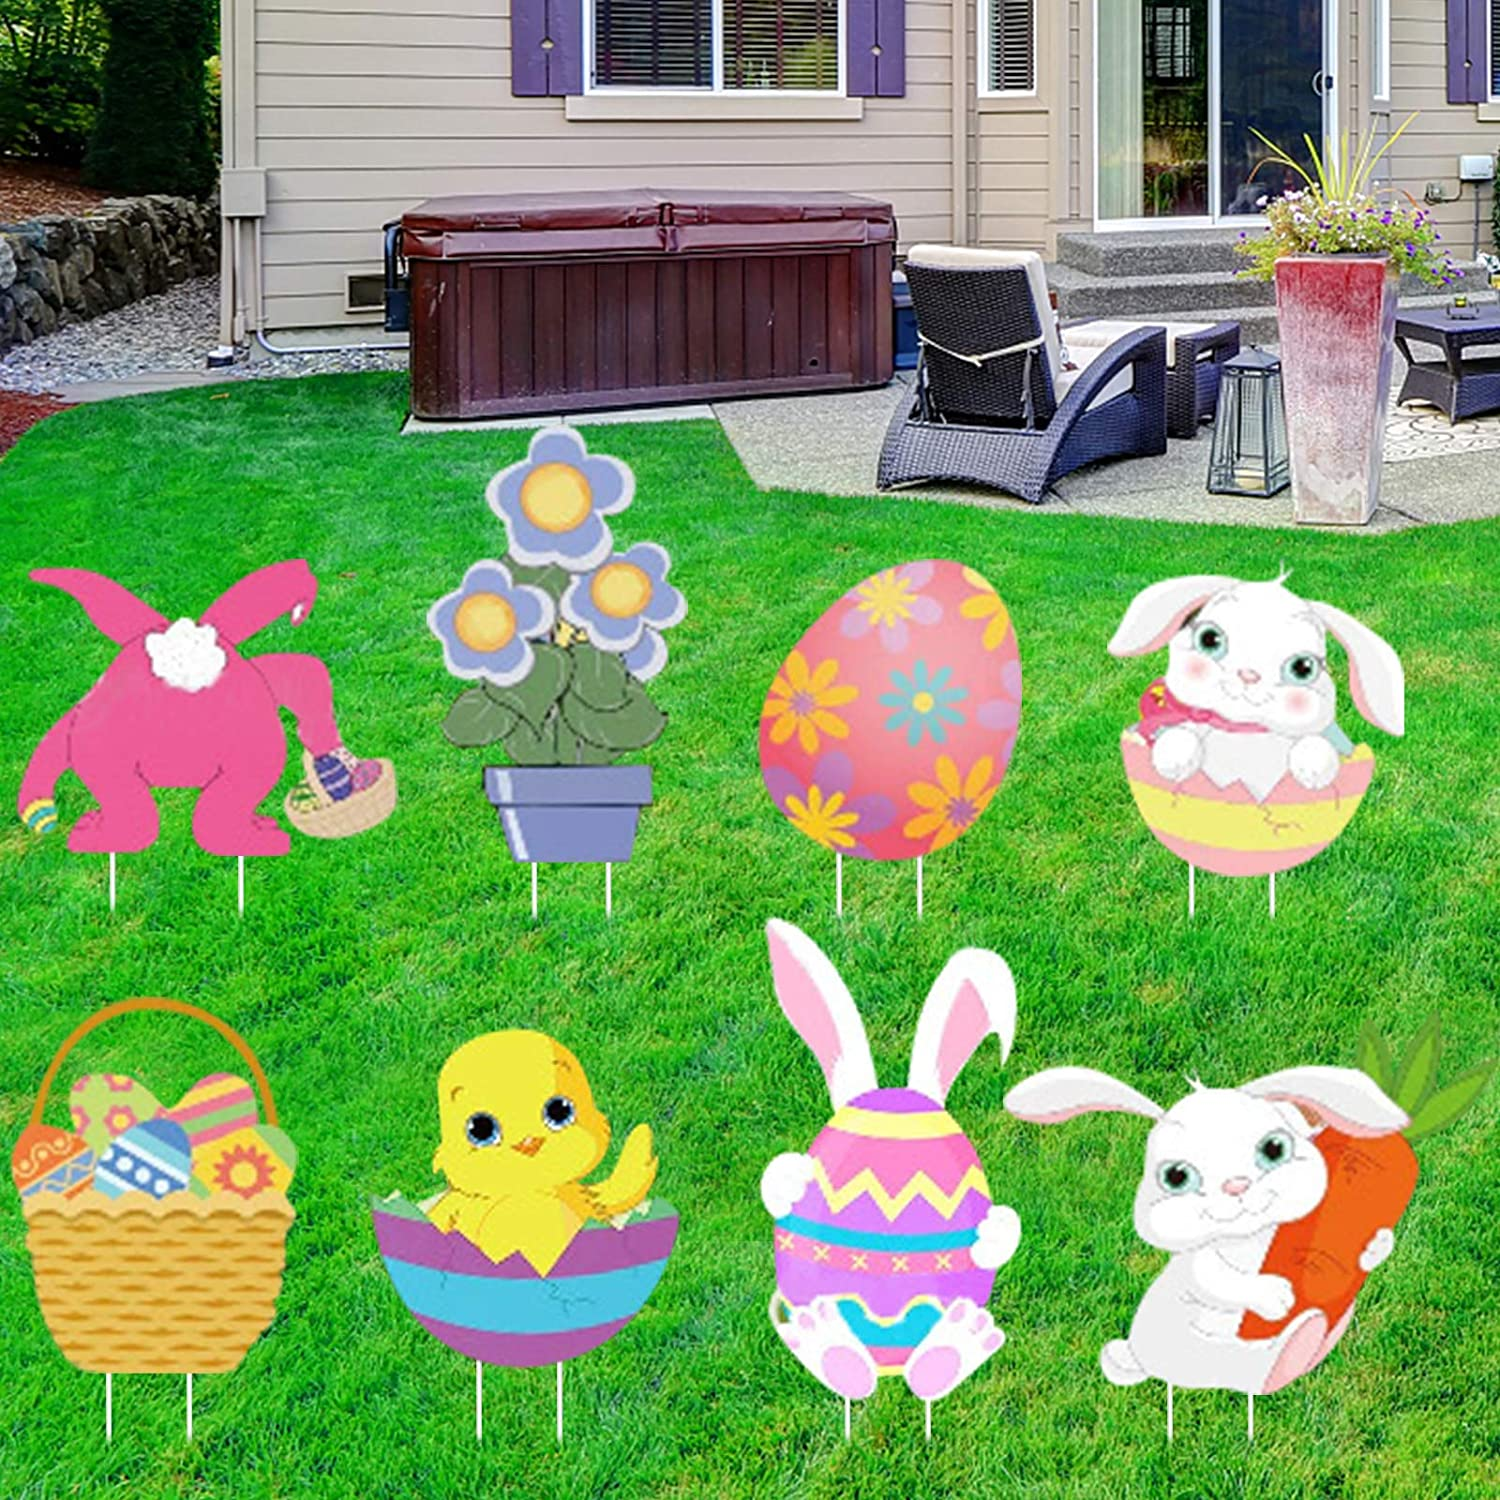 Lorvain 8PCS Easter Yard Signs Lawn Outdoor Decorations, Easter Egg Bunny Chick Yard Stake Signs Easter Party Decor